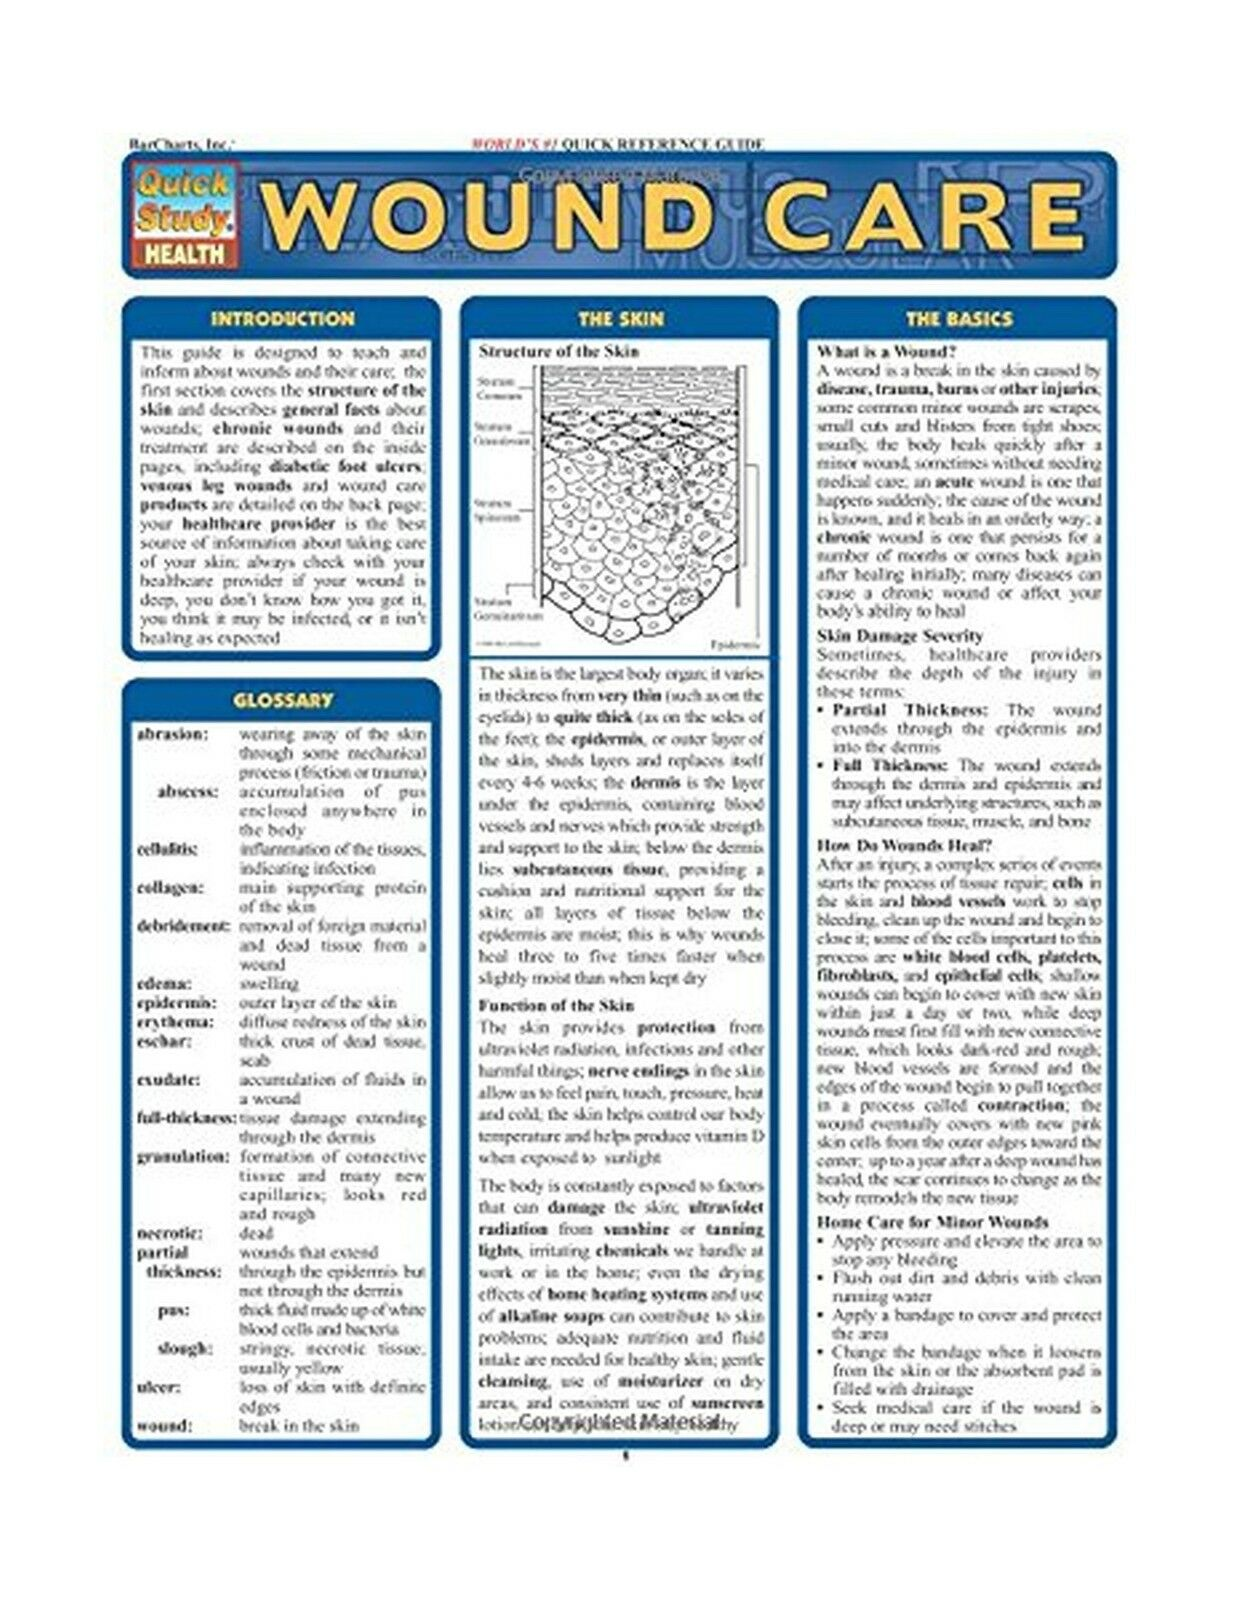 wound care quickstudy health